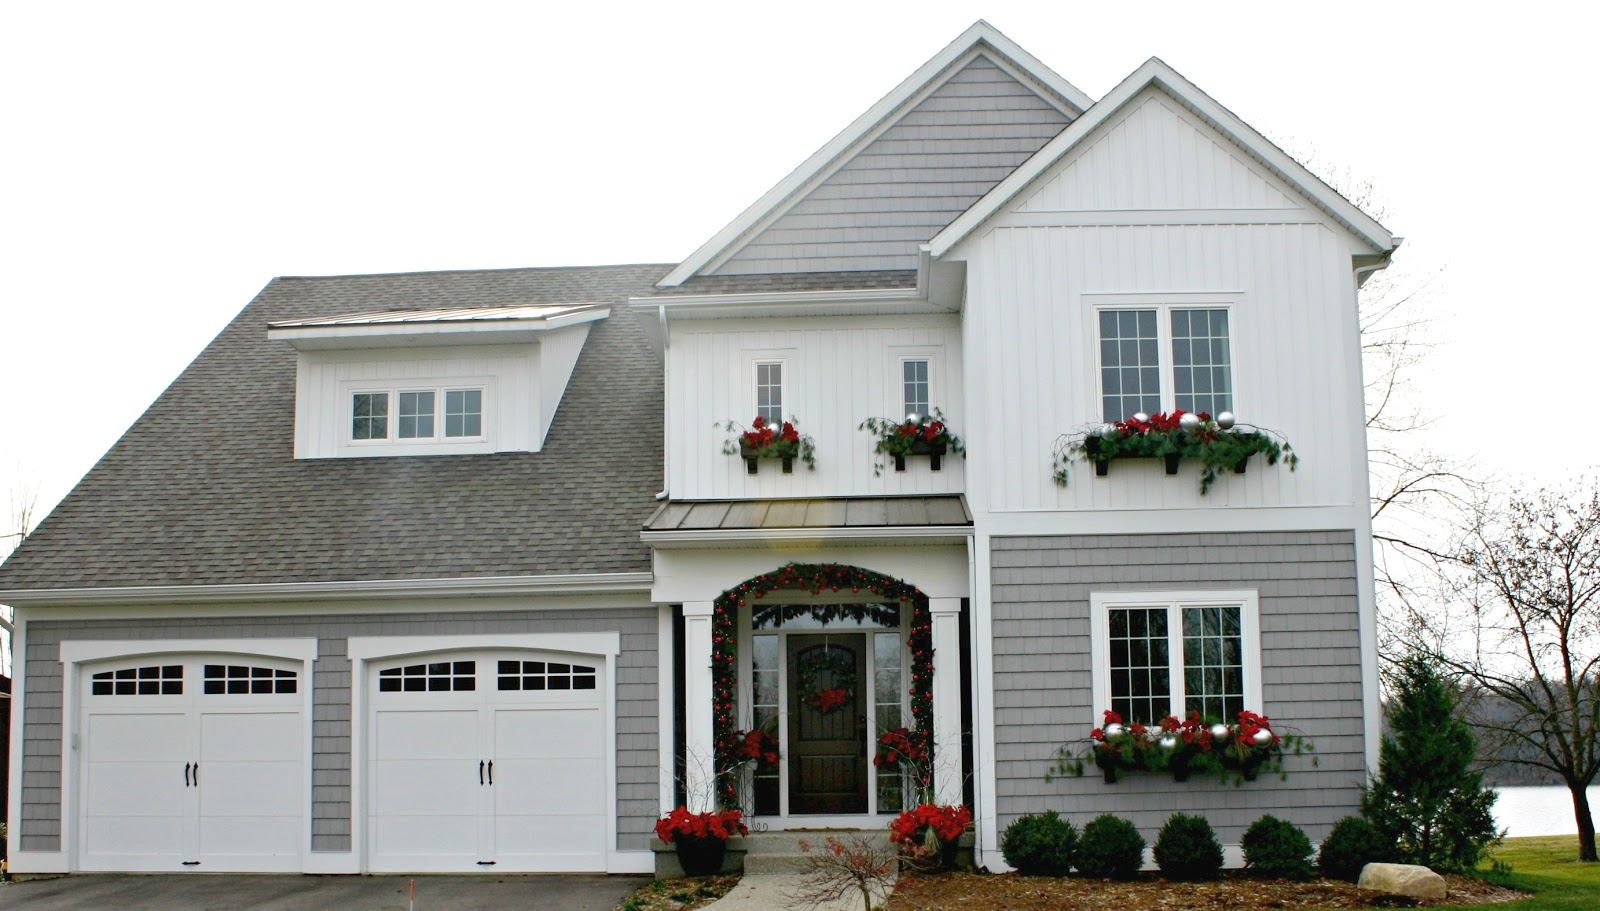 Holiday home tour the lilypad cottage for House ornaments exterior